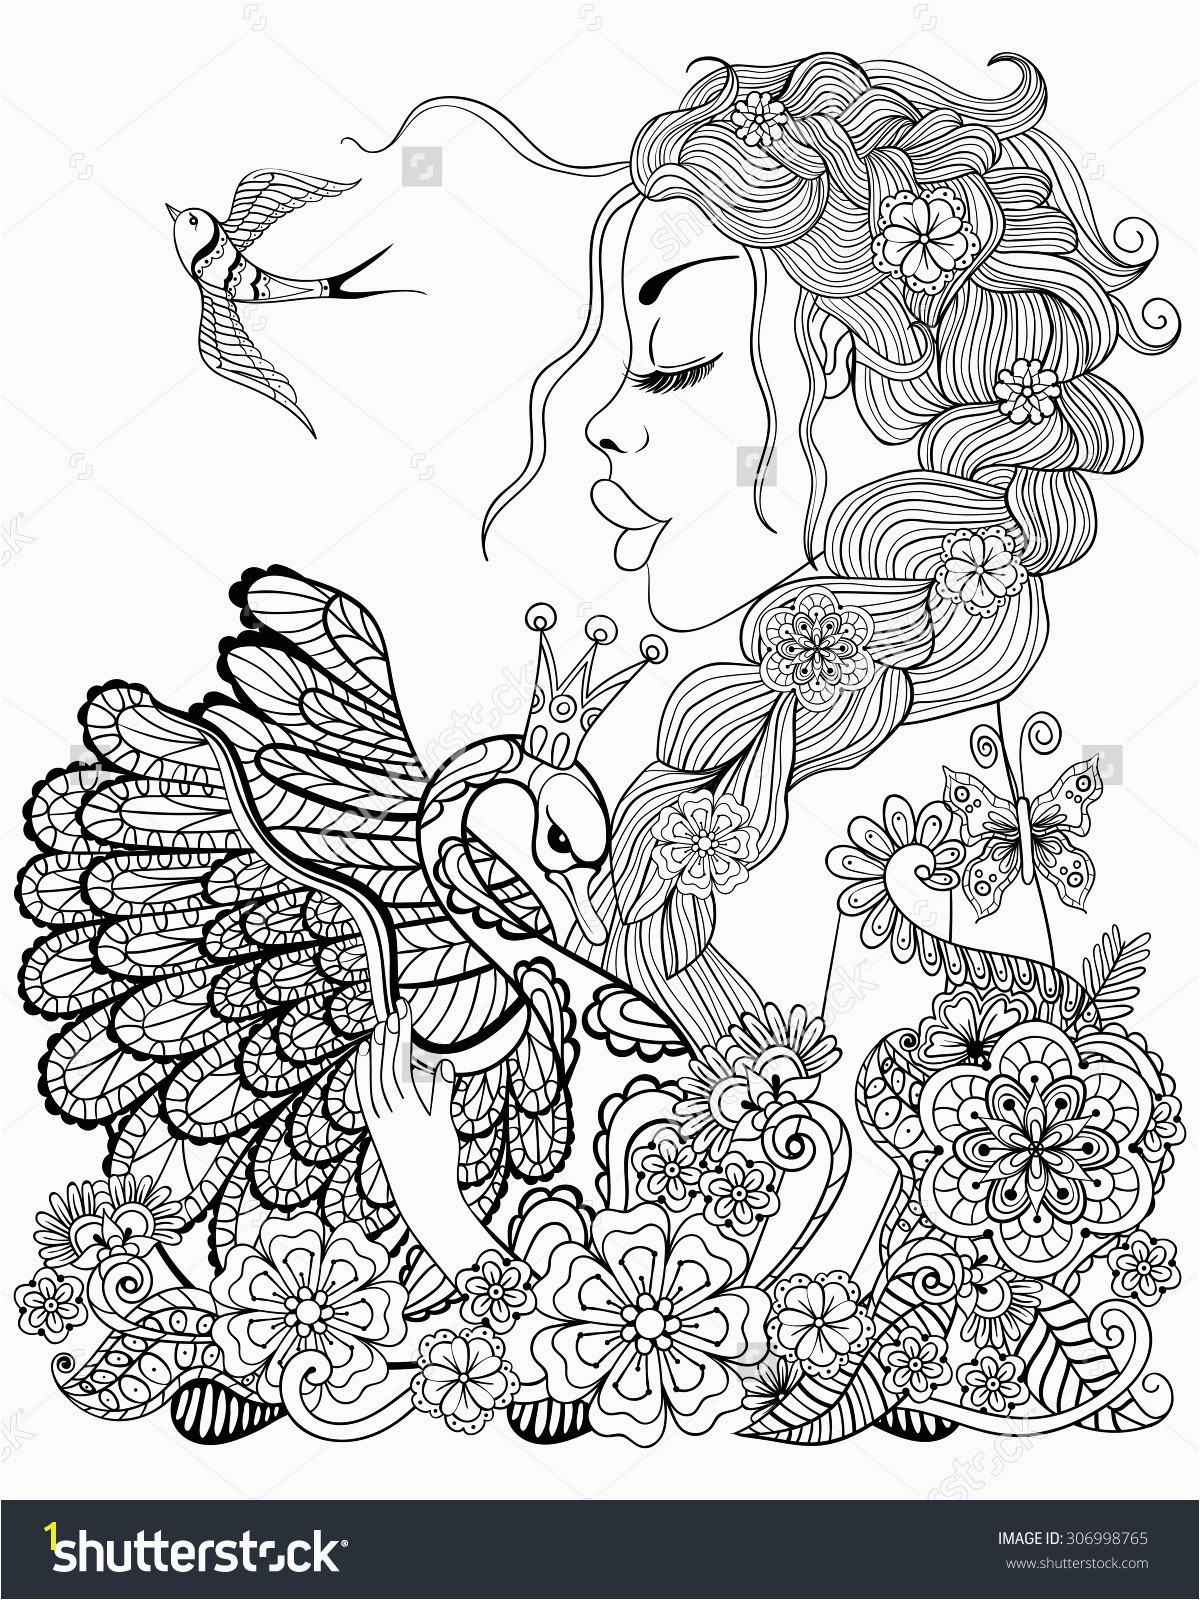 Best March Coloring Pages Unique A Coloring Page Best Media Cache Ec0 Awesome Free